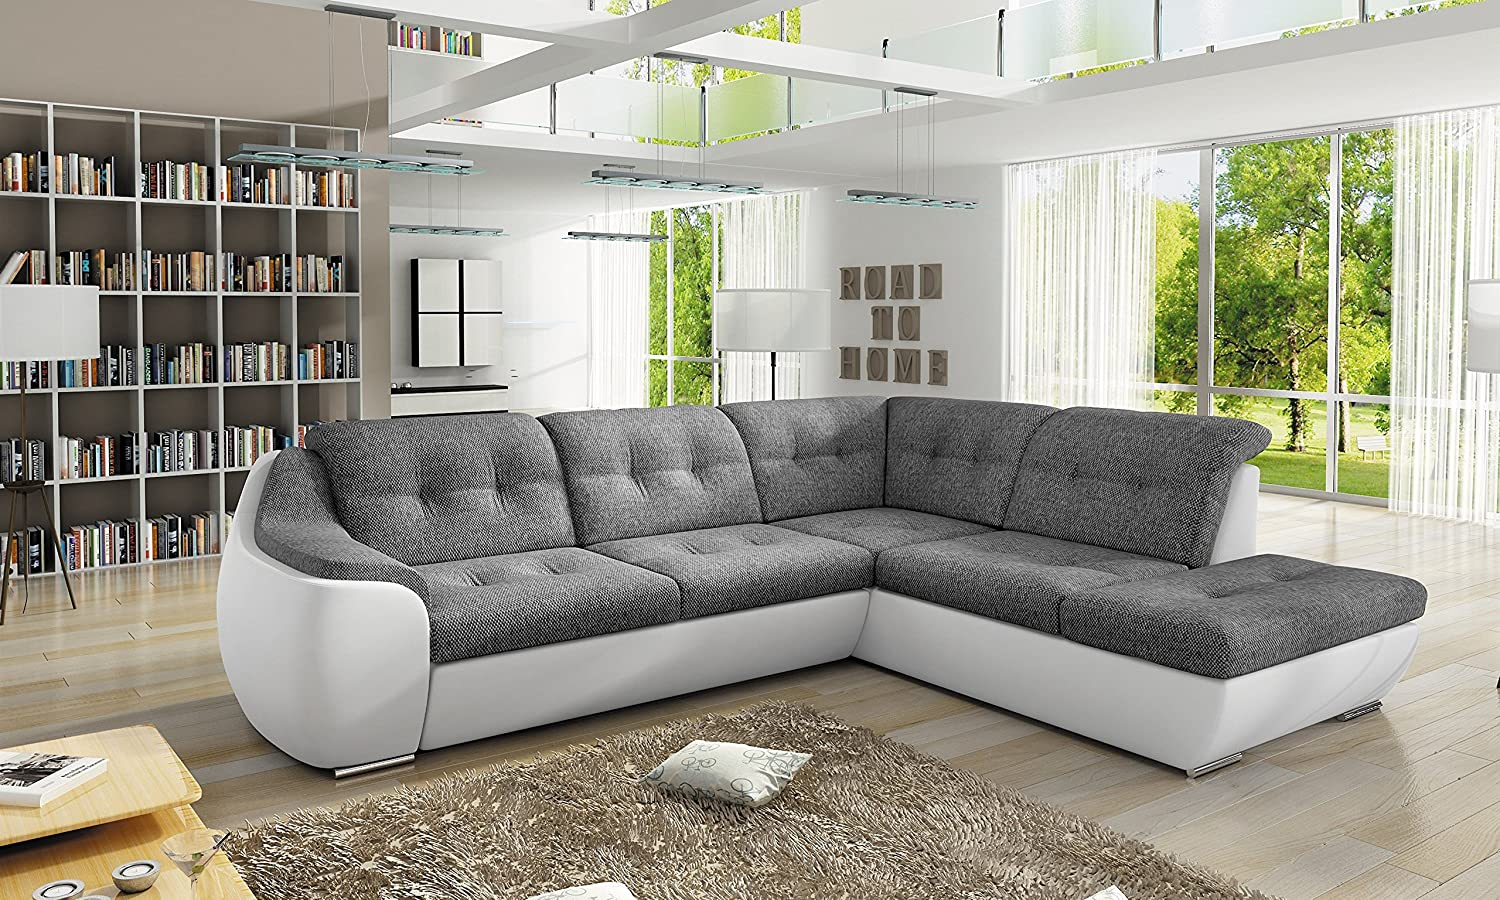 Sofa Couchgarnitur Galaxy D Polstergarnitur Couch Sofagarnitur